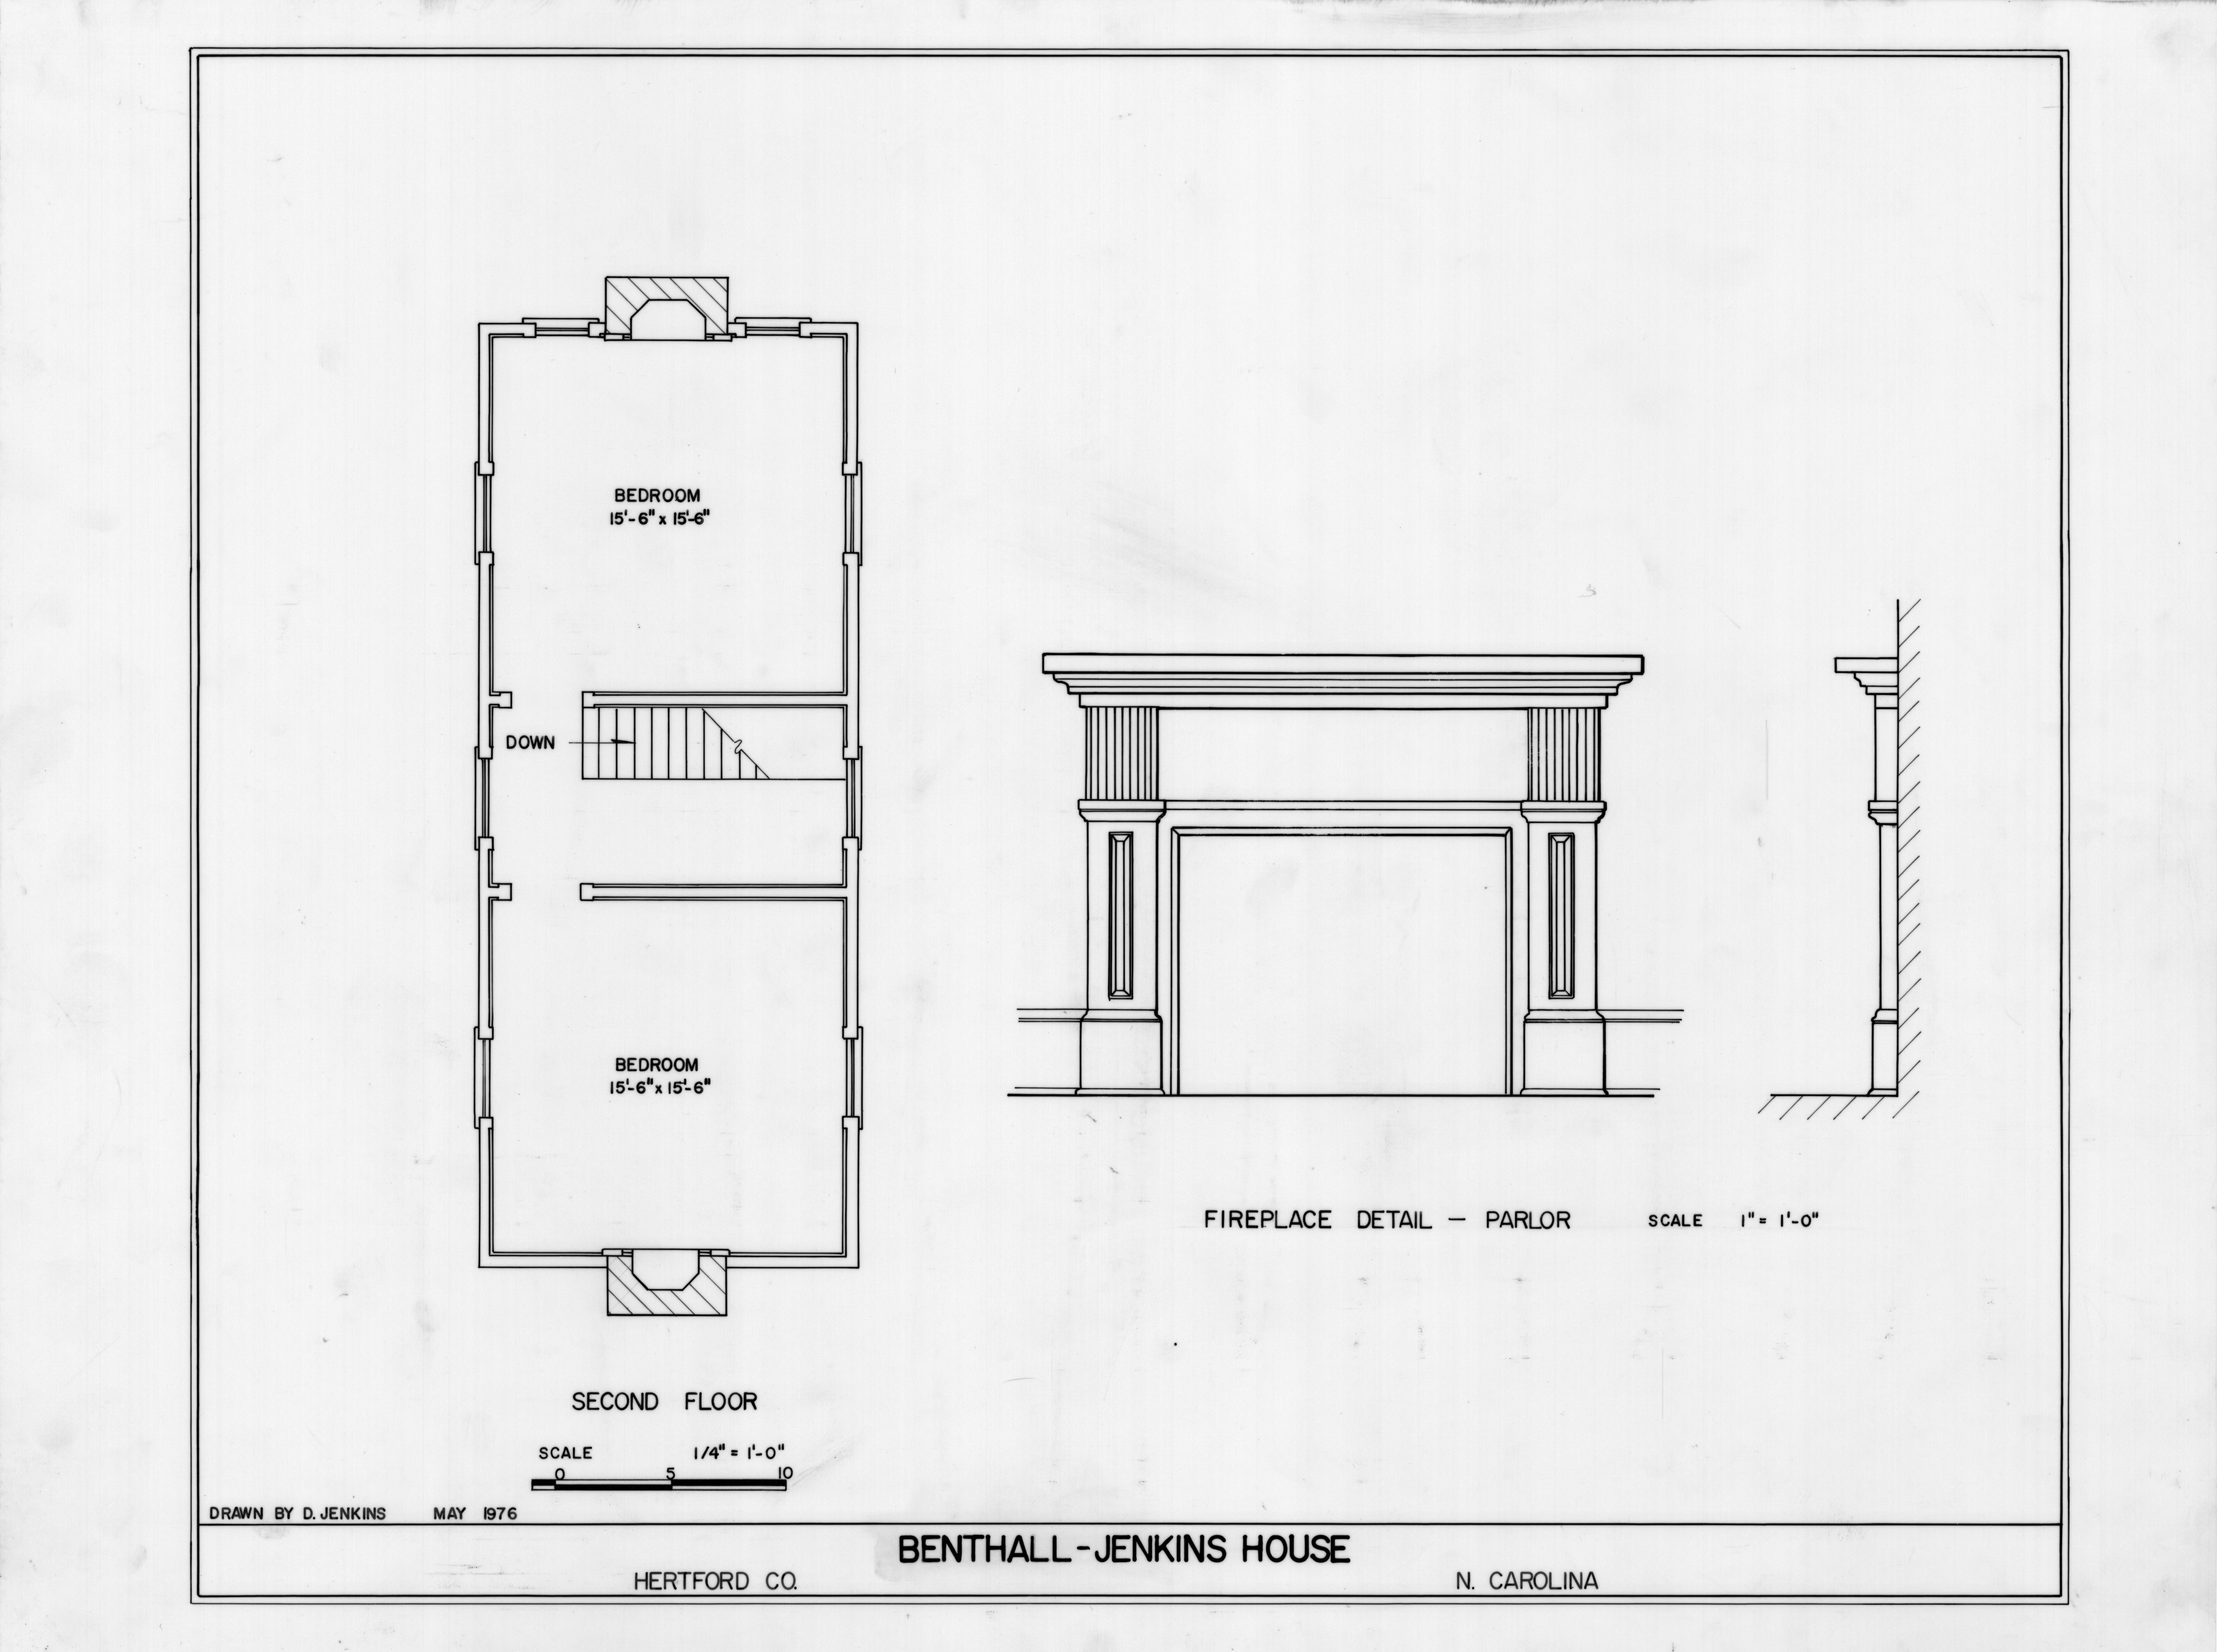 Second Floor Plan And Fireplace Details Benthall Jenkins